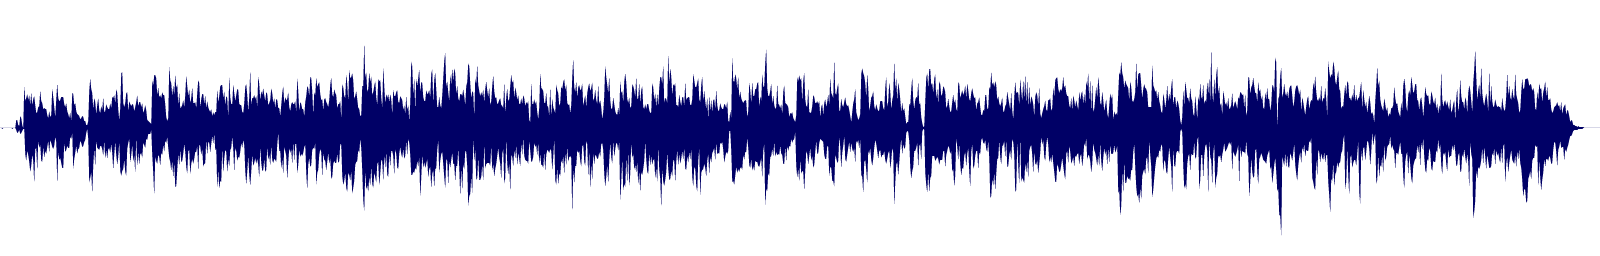 waveform of track #112059